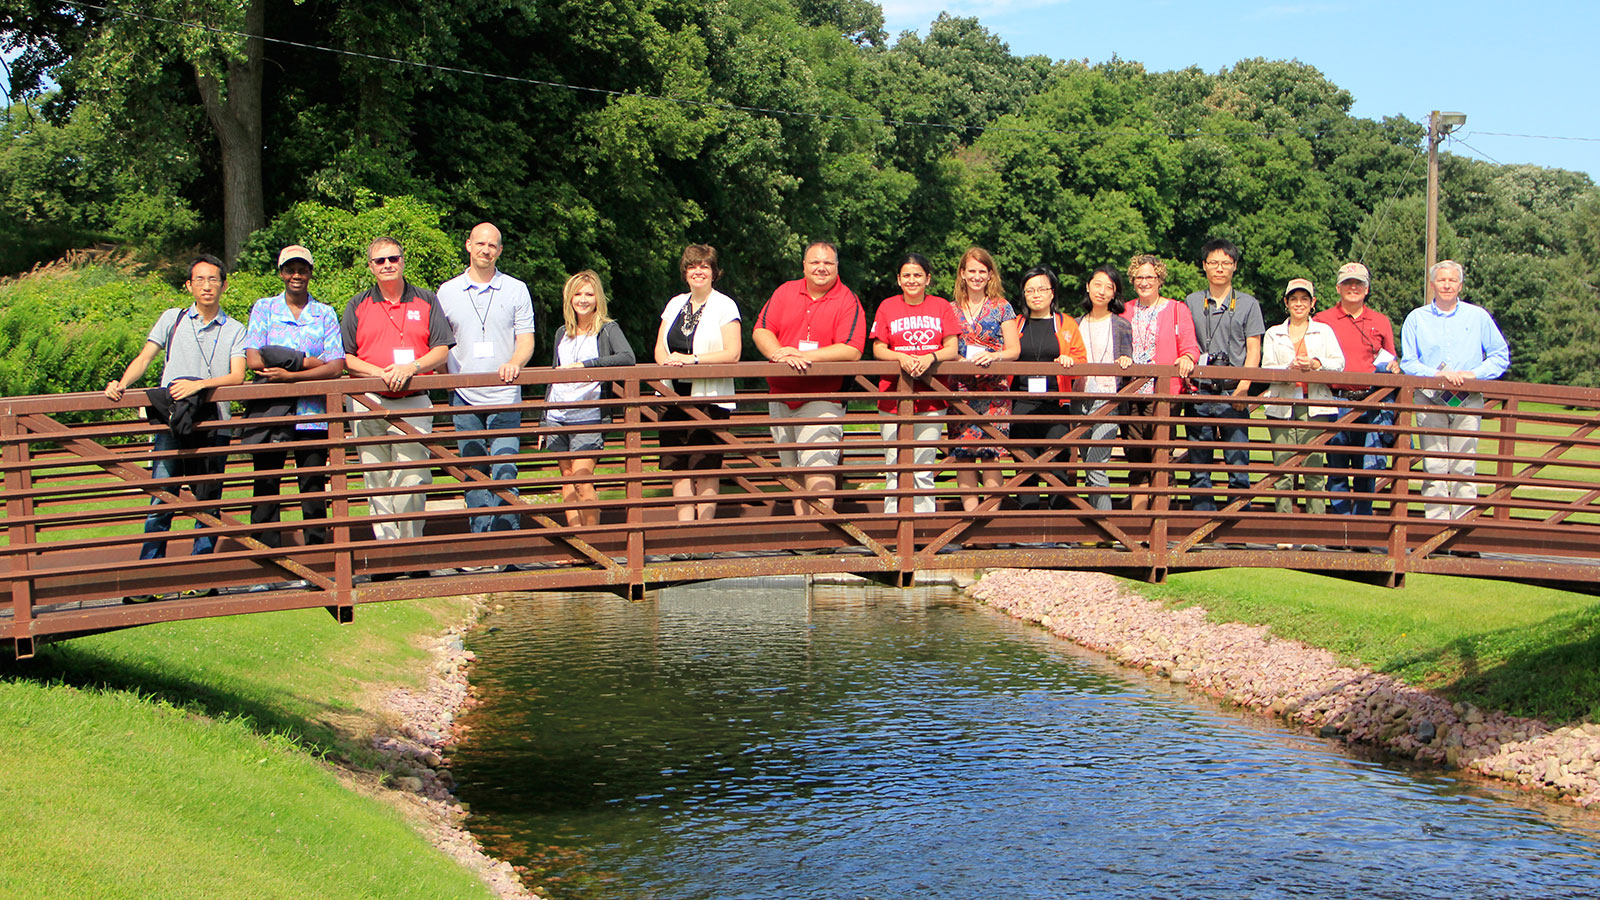 Group from the 2015 Roads Scholar Tour